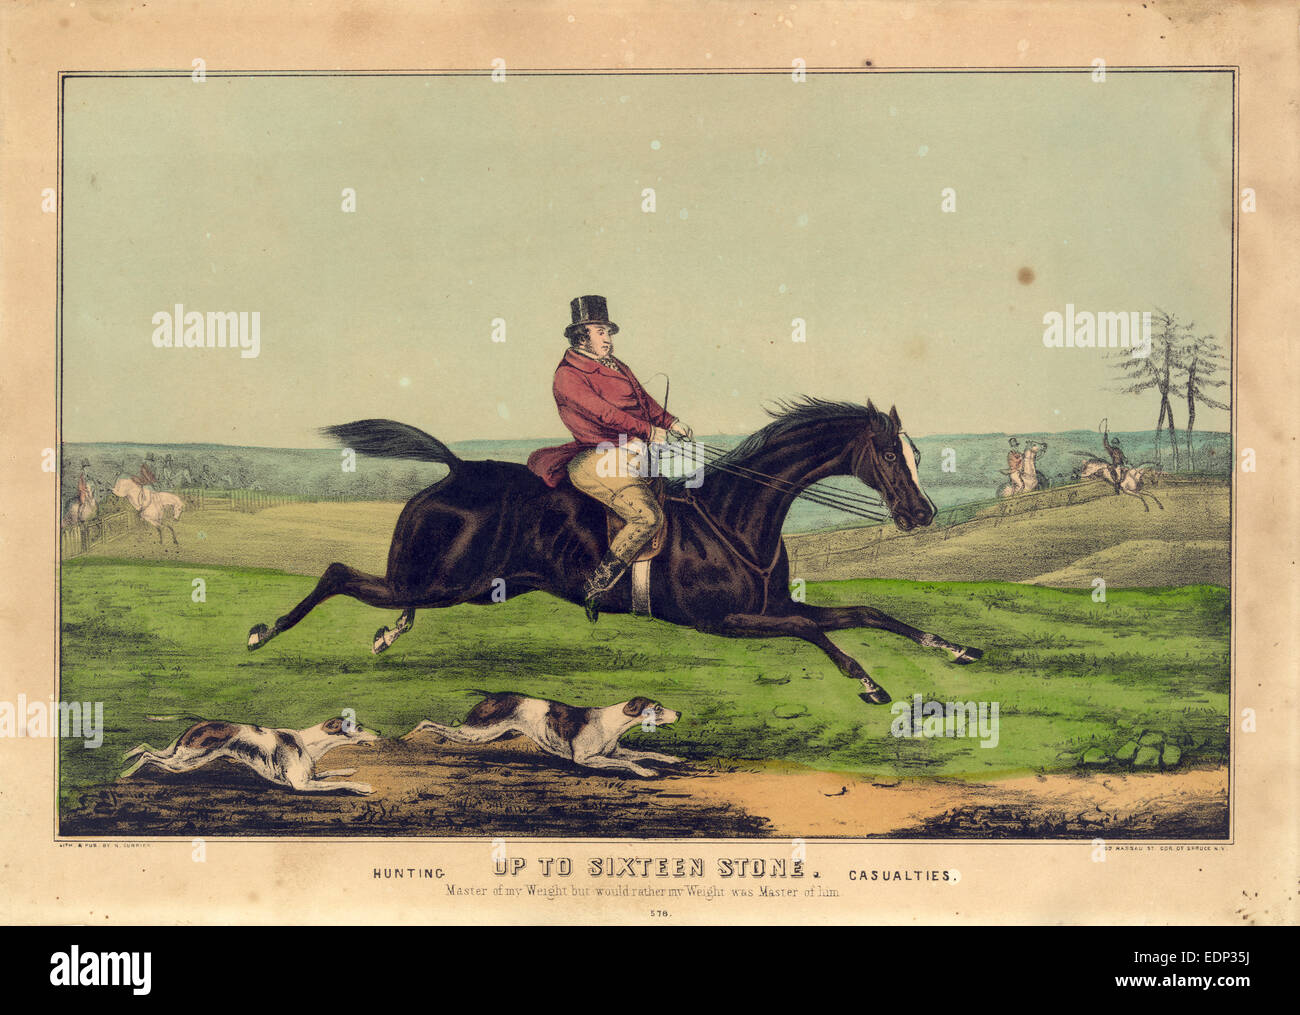 Up to sixteen stone: hunting casualties; N. Currier (Firm),; New York : Published by N. Currier, [between 1835 and - Stock Image